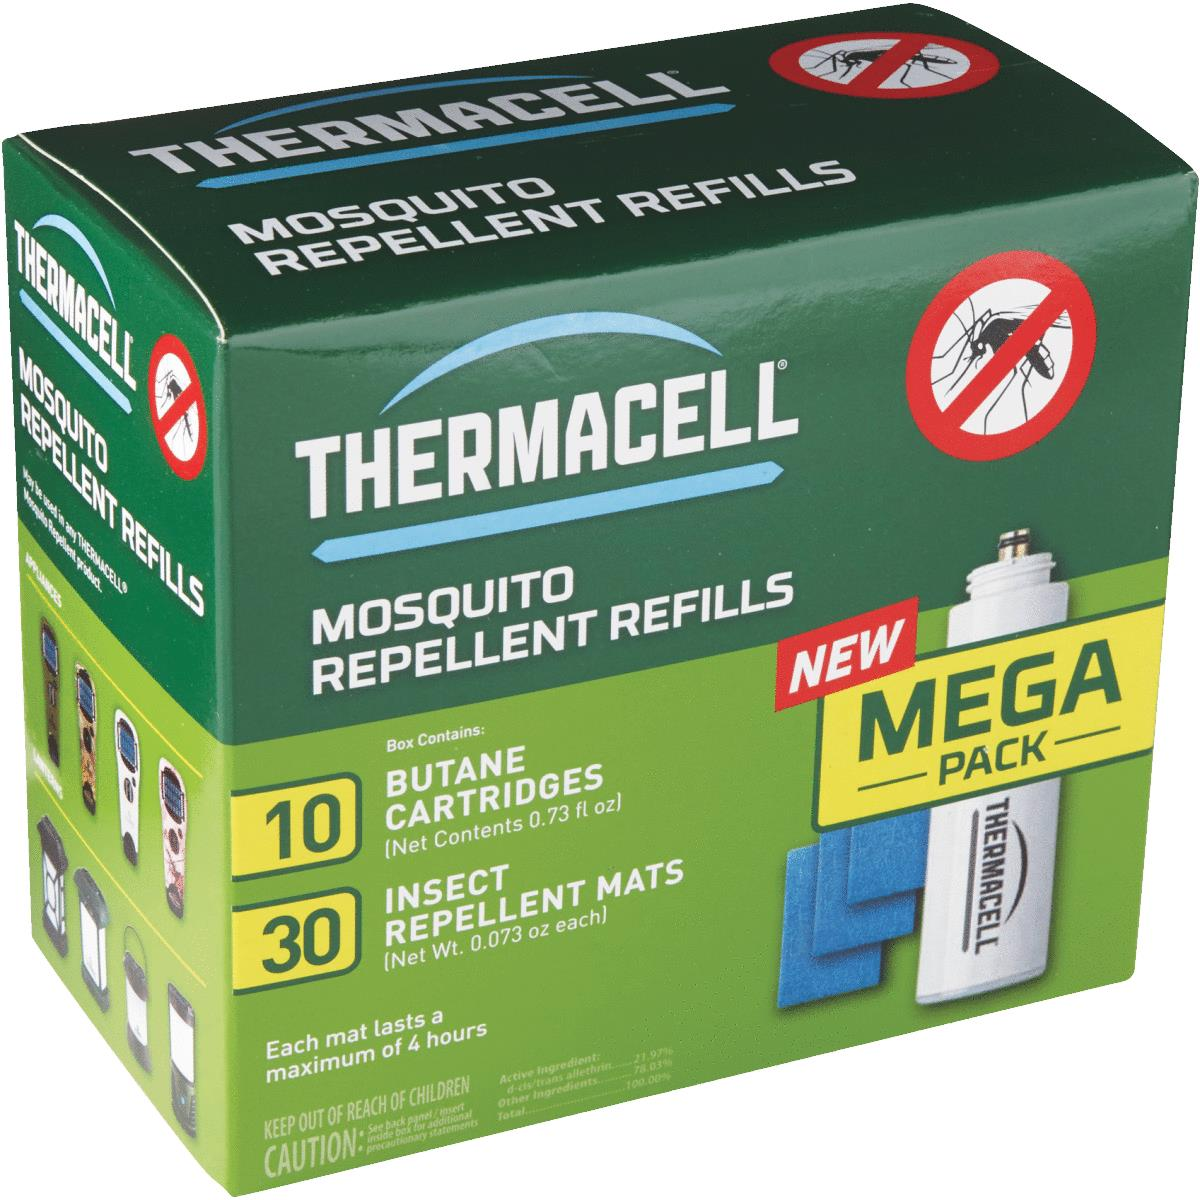 ThermaCELL 10 Pack Mosquito Repellent Refill